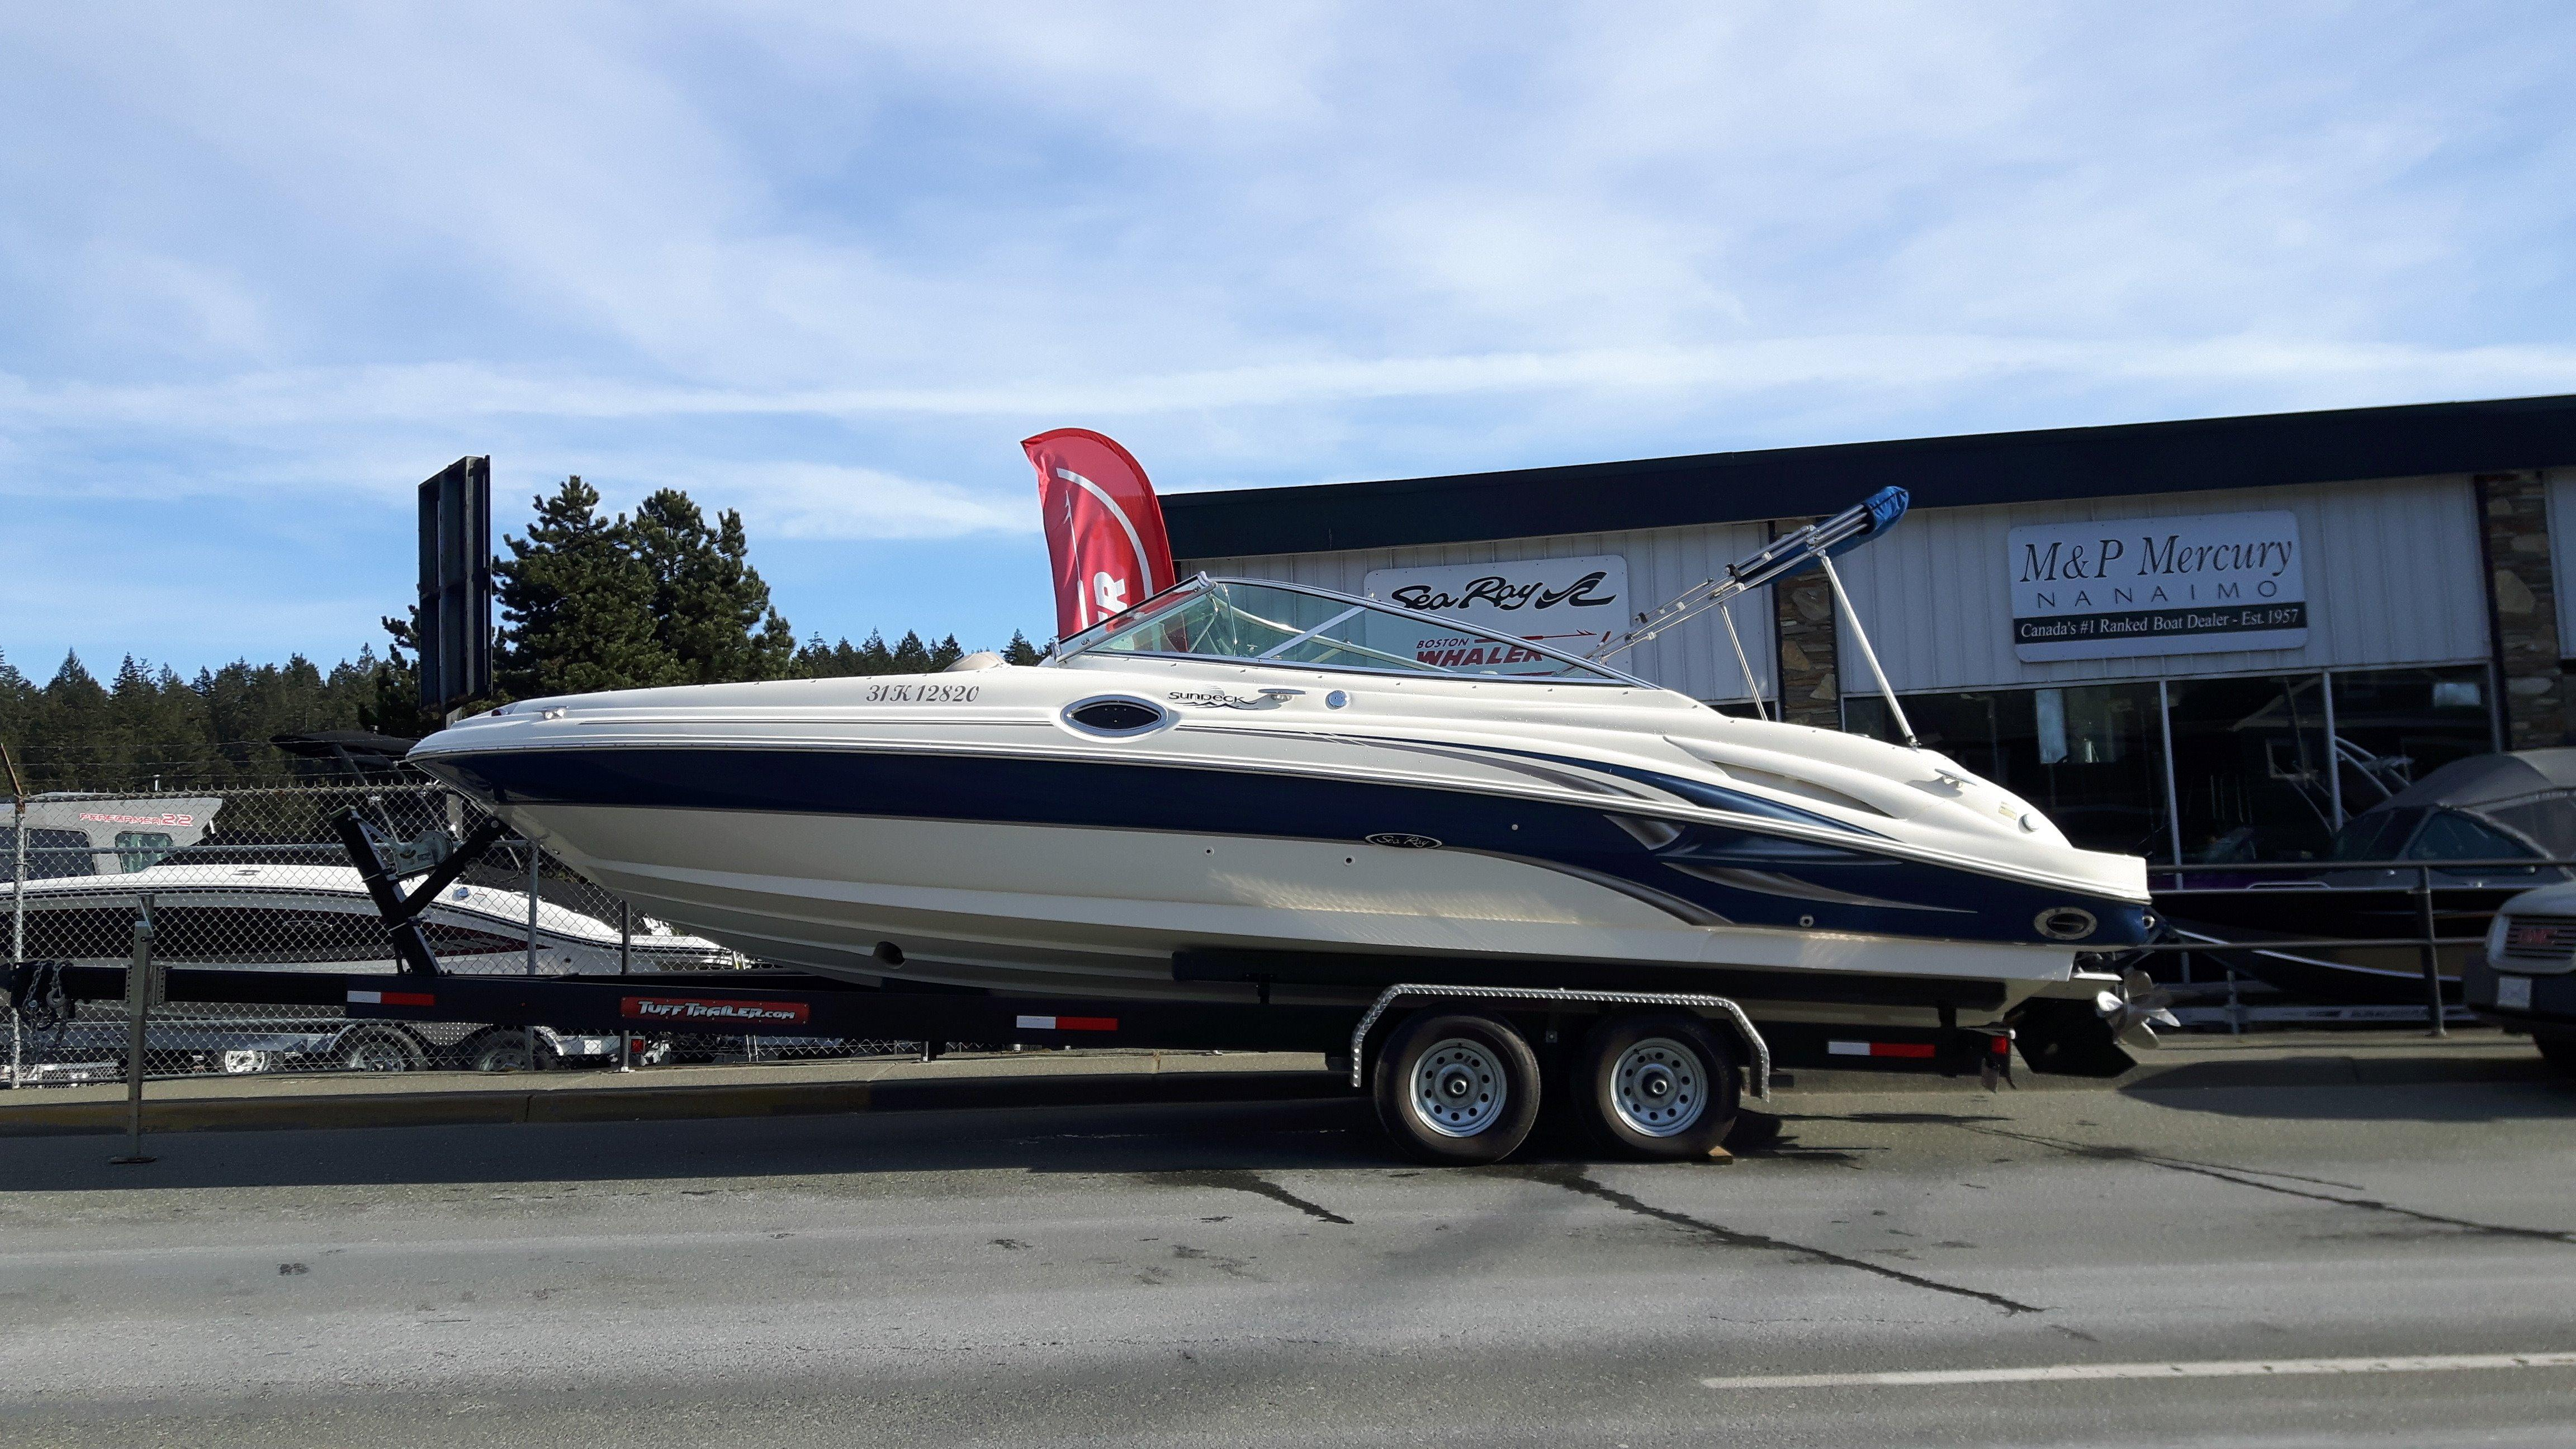 6153362_20170307155914831_1_XLARGE&w=4608&h=2592&t=1488931168000 2003 sea ray 270 sundeck power boat for sale www yachtworld com 1992 Sea Ray 210 Bowrider at love-stories.co